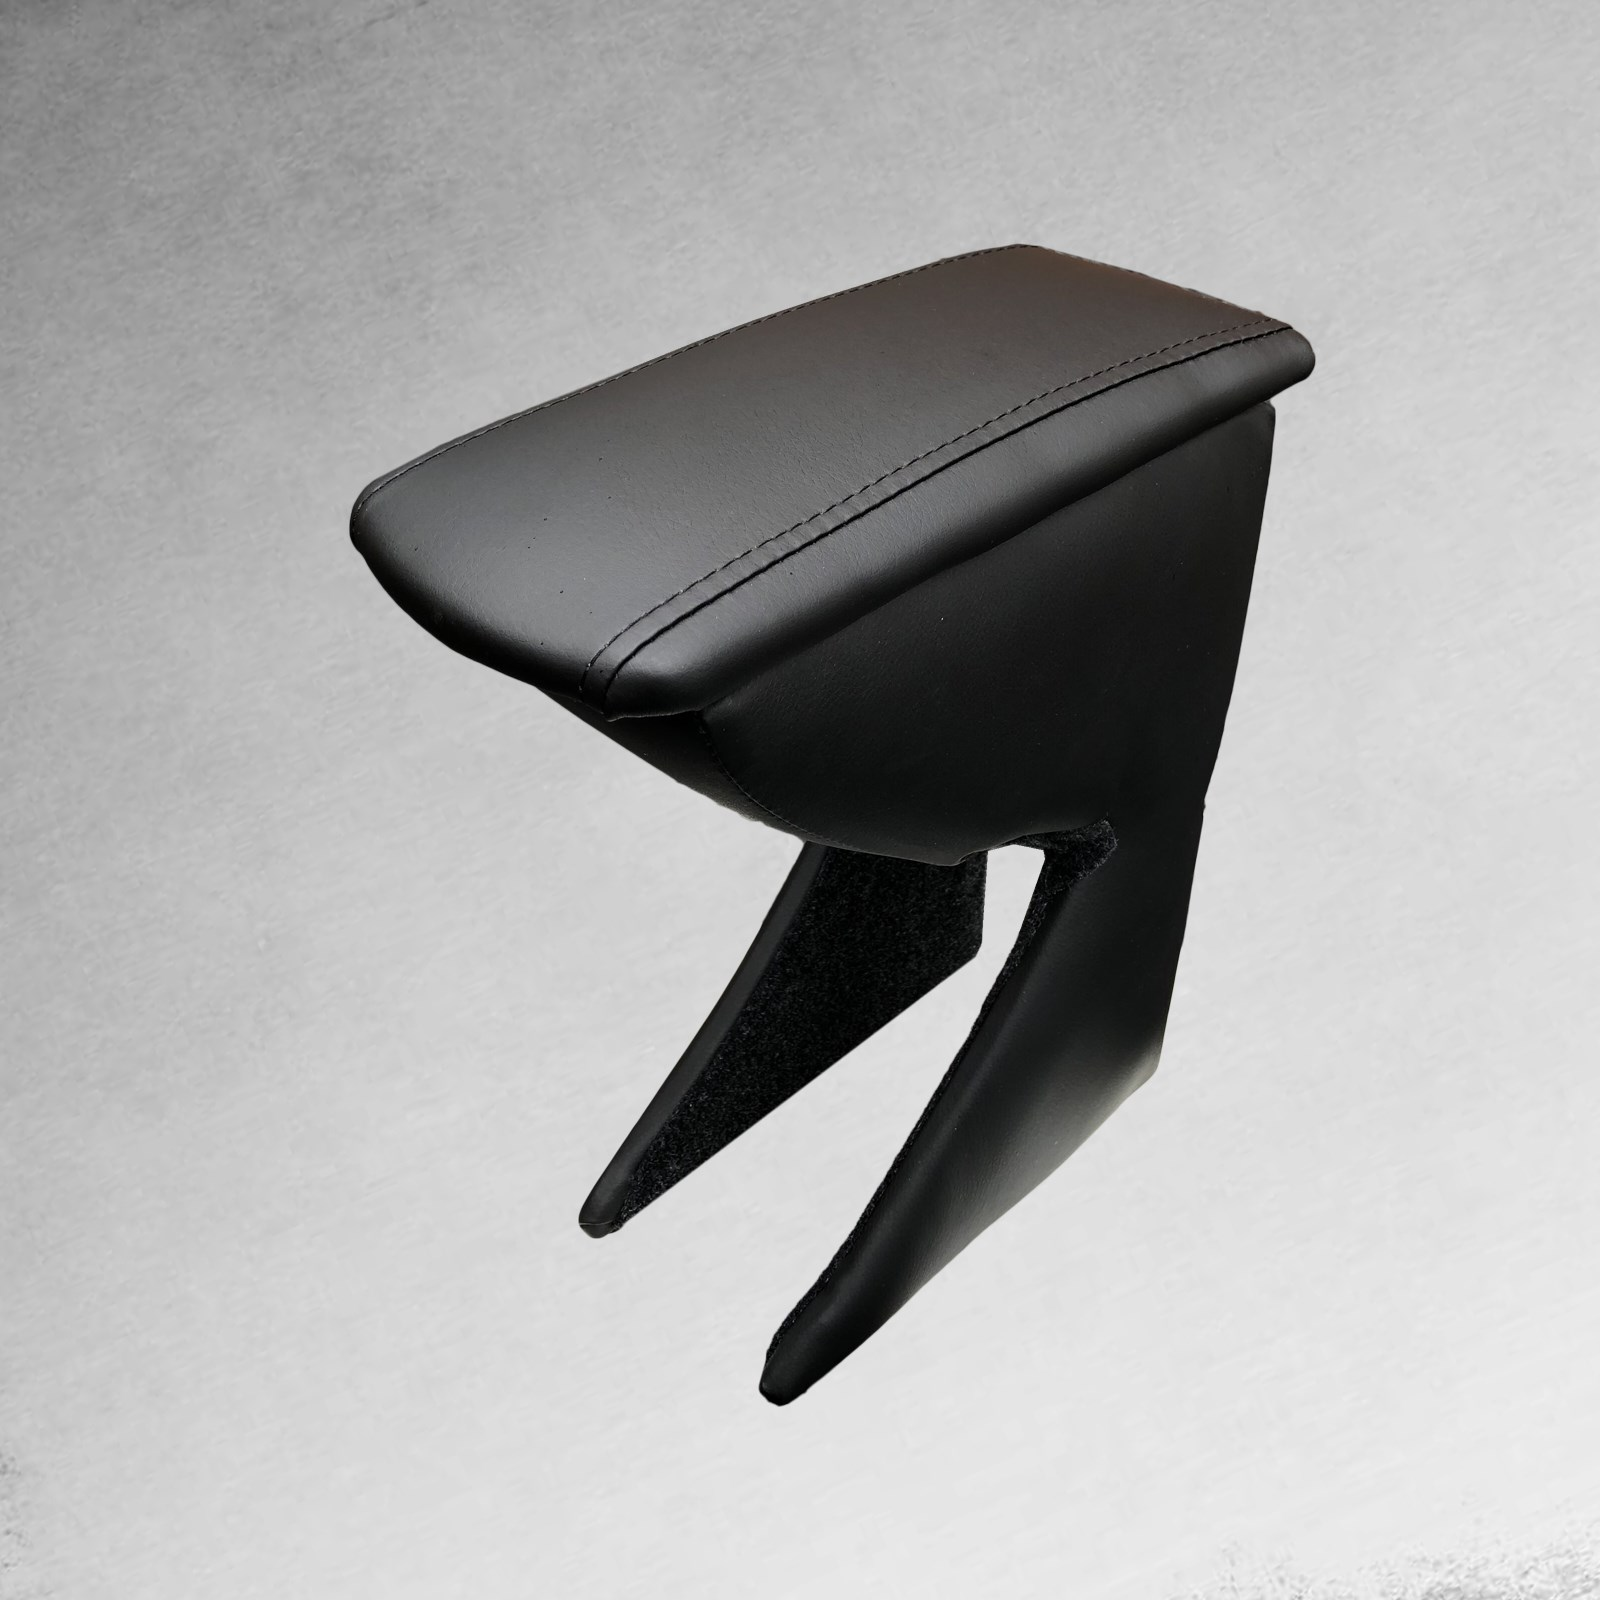 Armrest ecodrive Nissan Almera G15 (2012 2018)|Rear Racks & Accessories|Automobiles & Motorcycles - title=